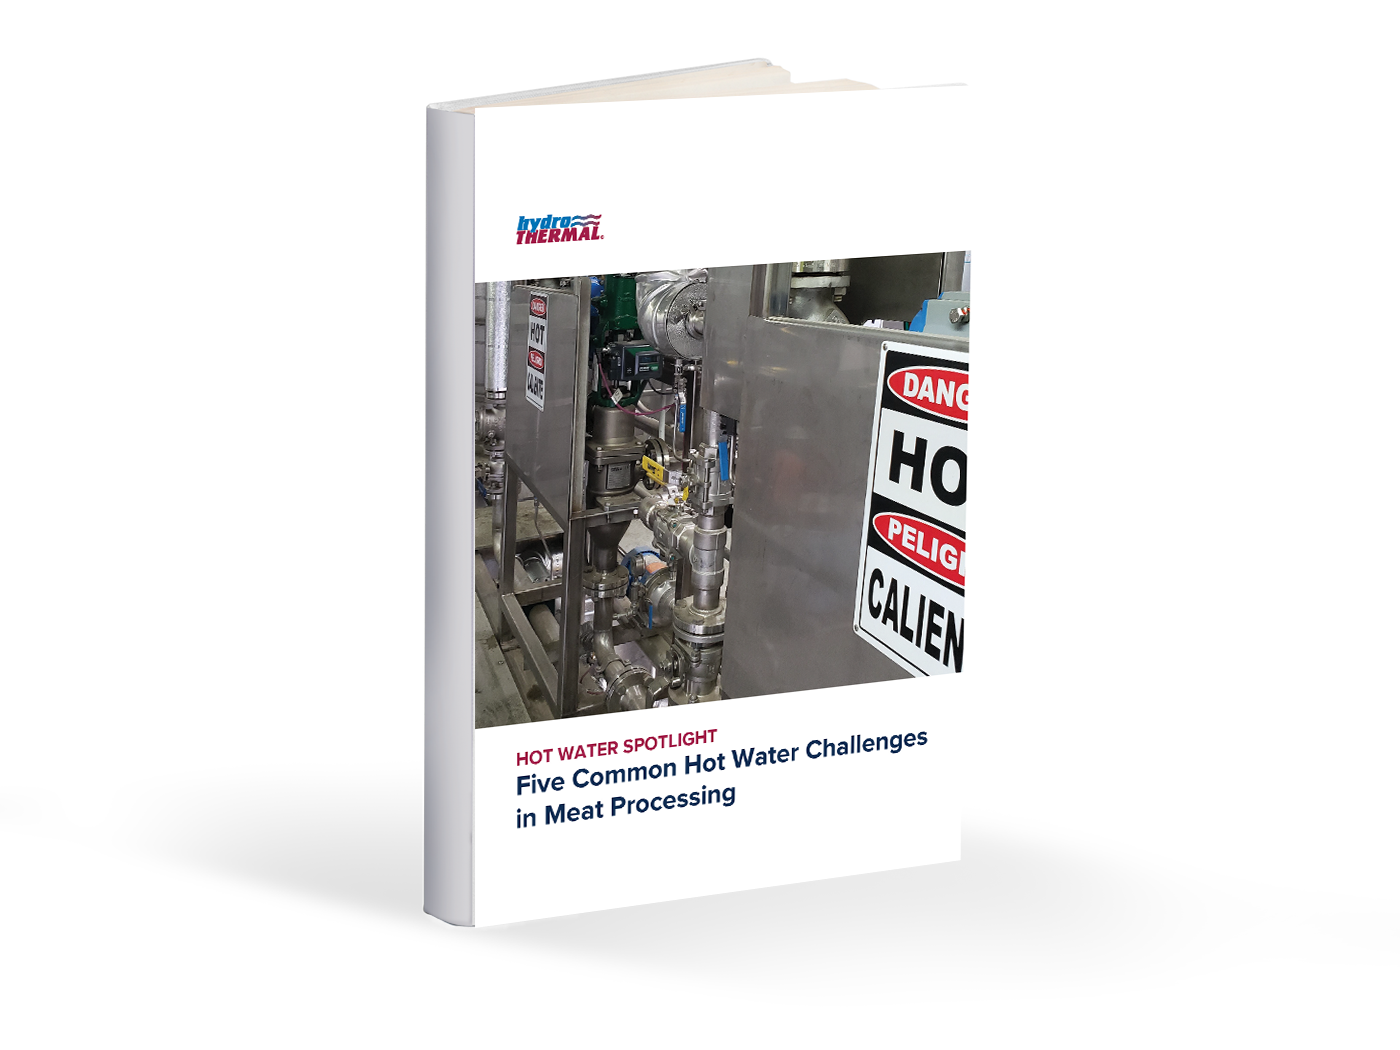 Five Common Hot Water Challenges in Meat Processing Guide